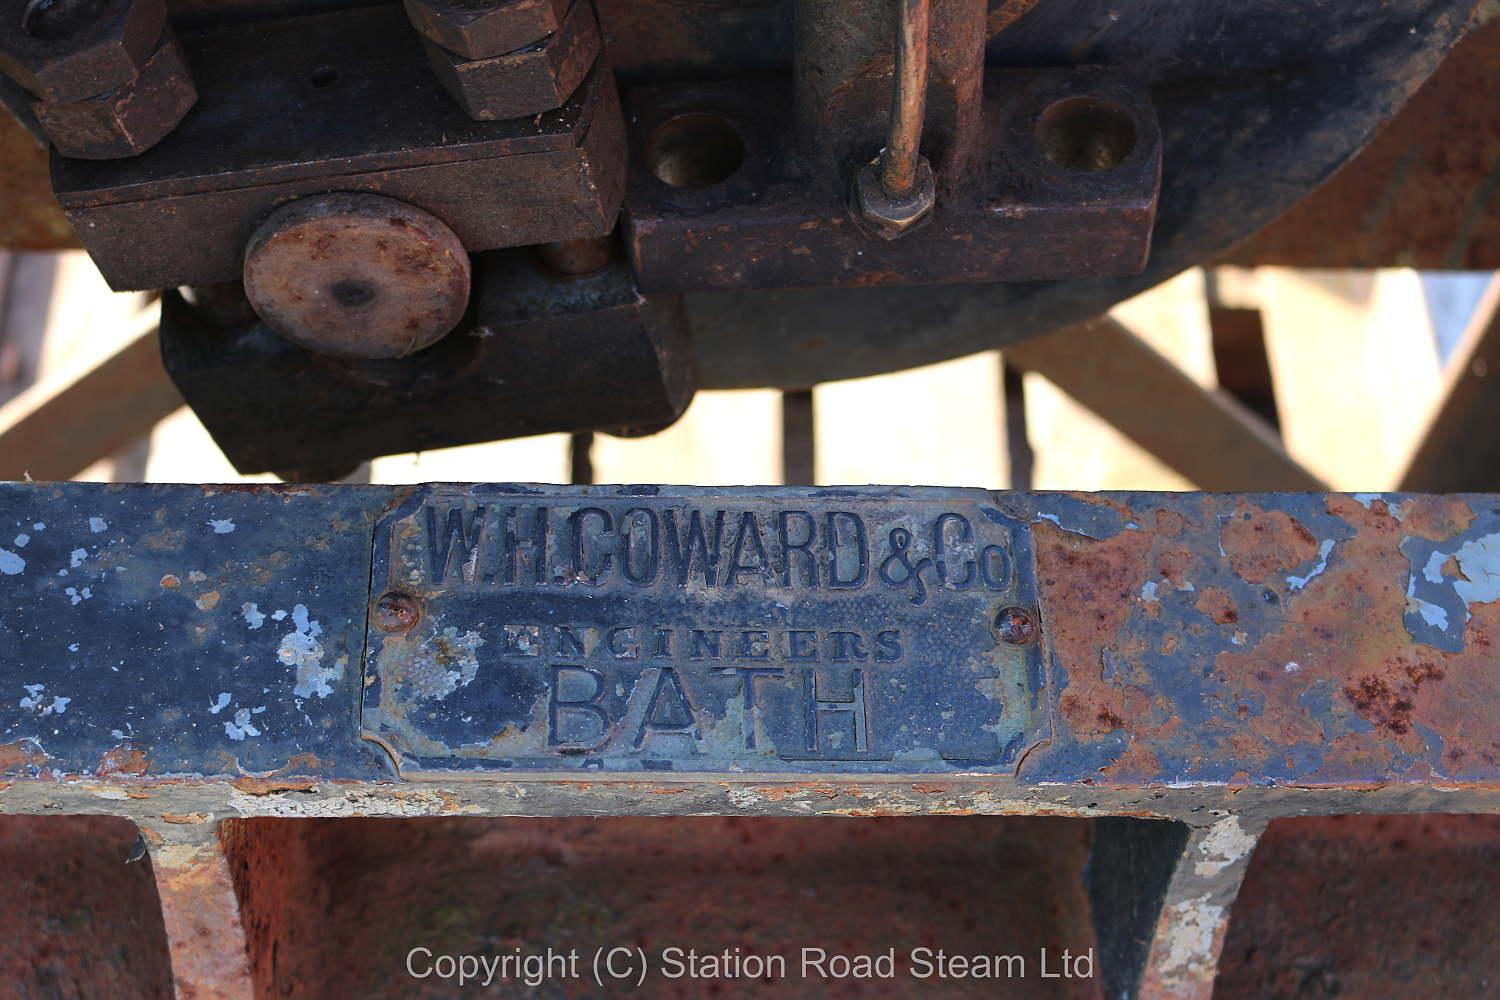 W.H.Coward & Co vertical engine